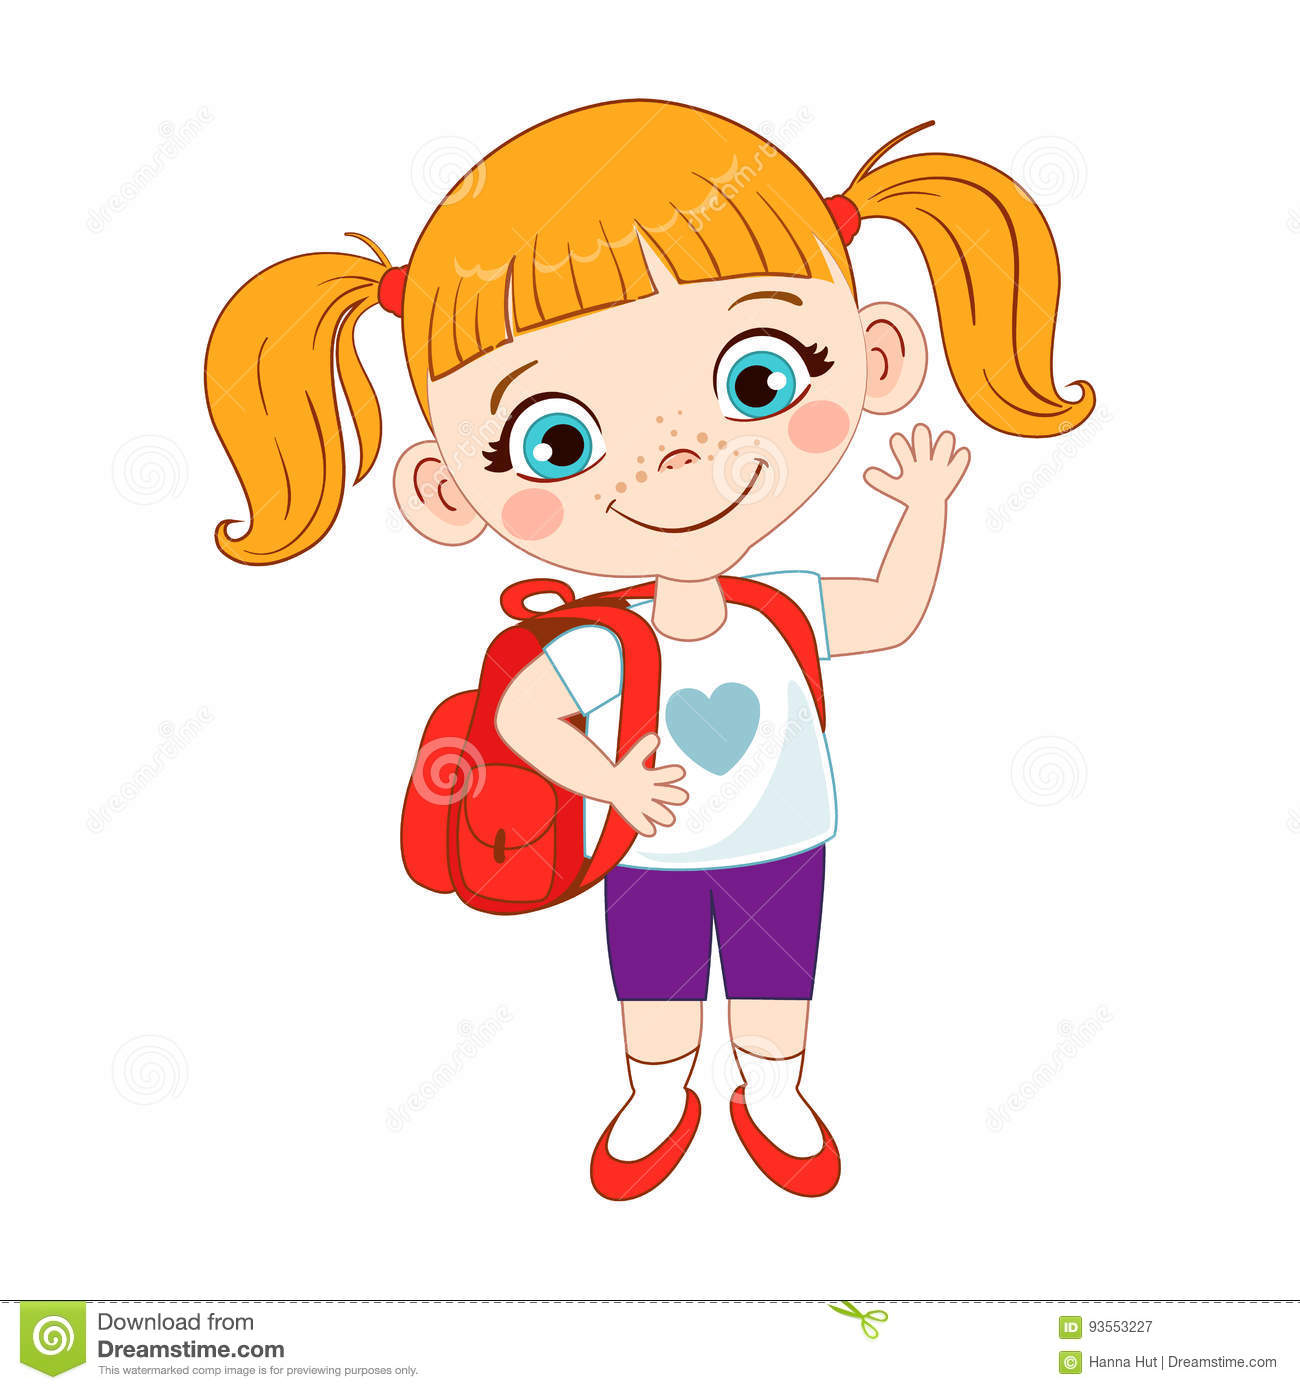 Cute School Girl With A Backpack. Stock Vector - Illustration of ... 267c7f3d0c0bb